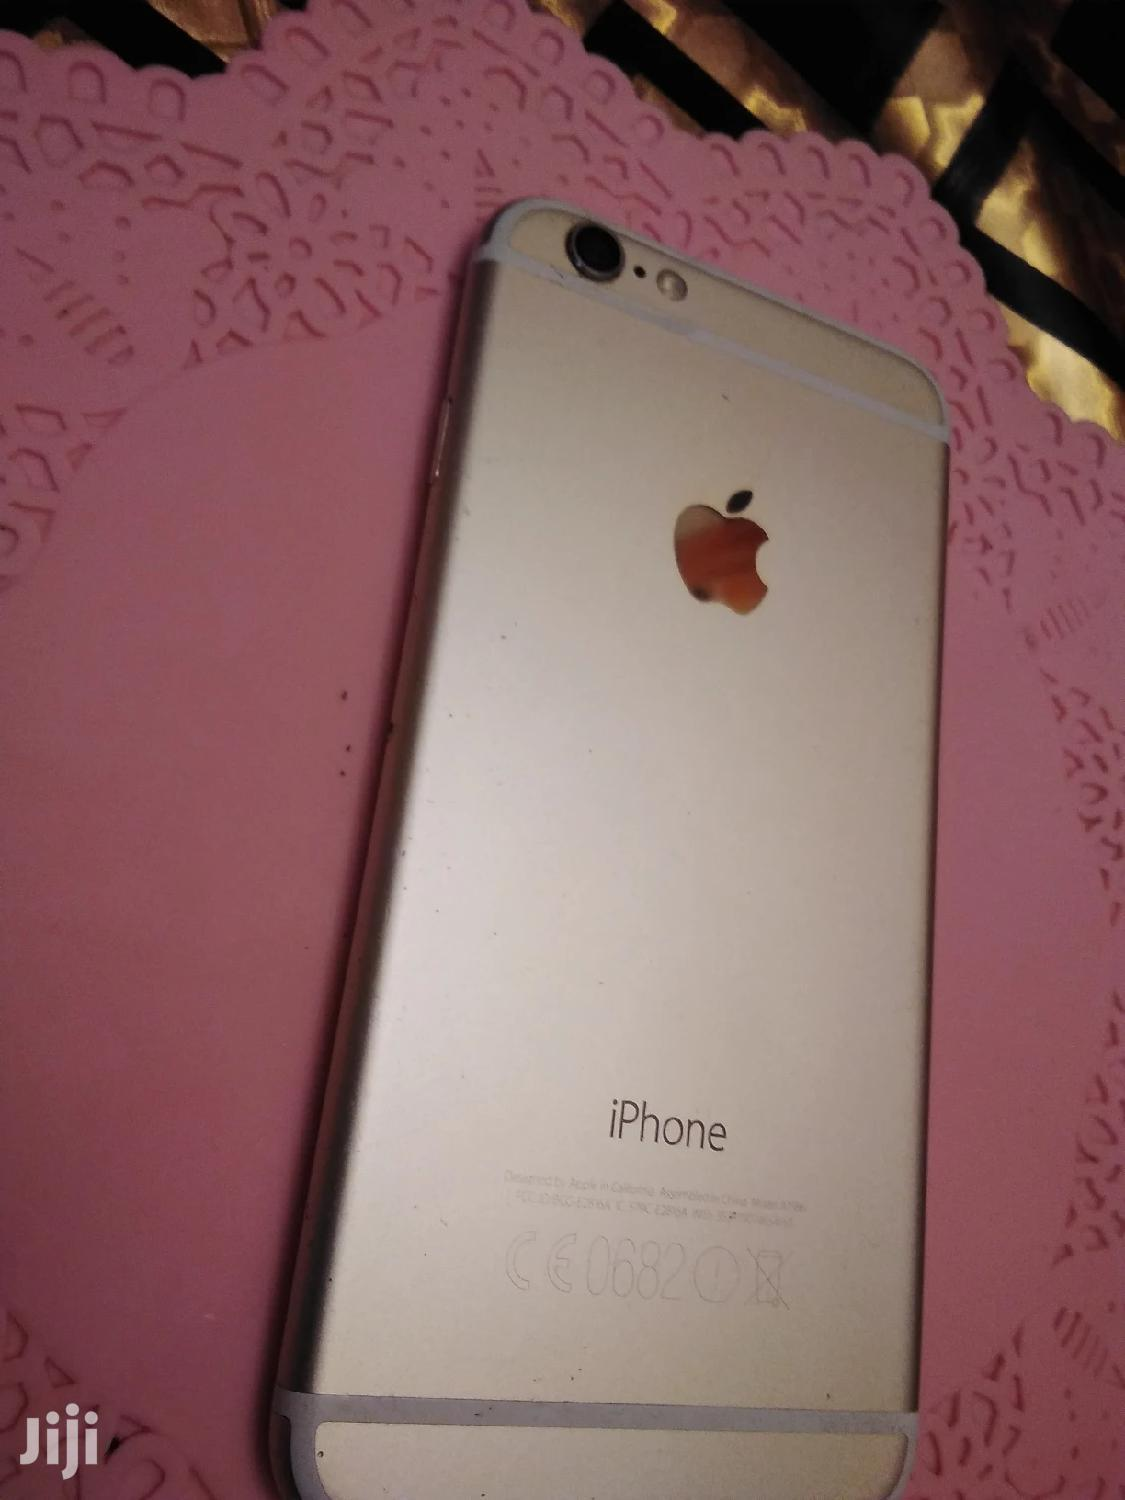 Archive: Apple iPhone 6 16 GB Gold